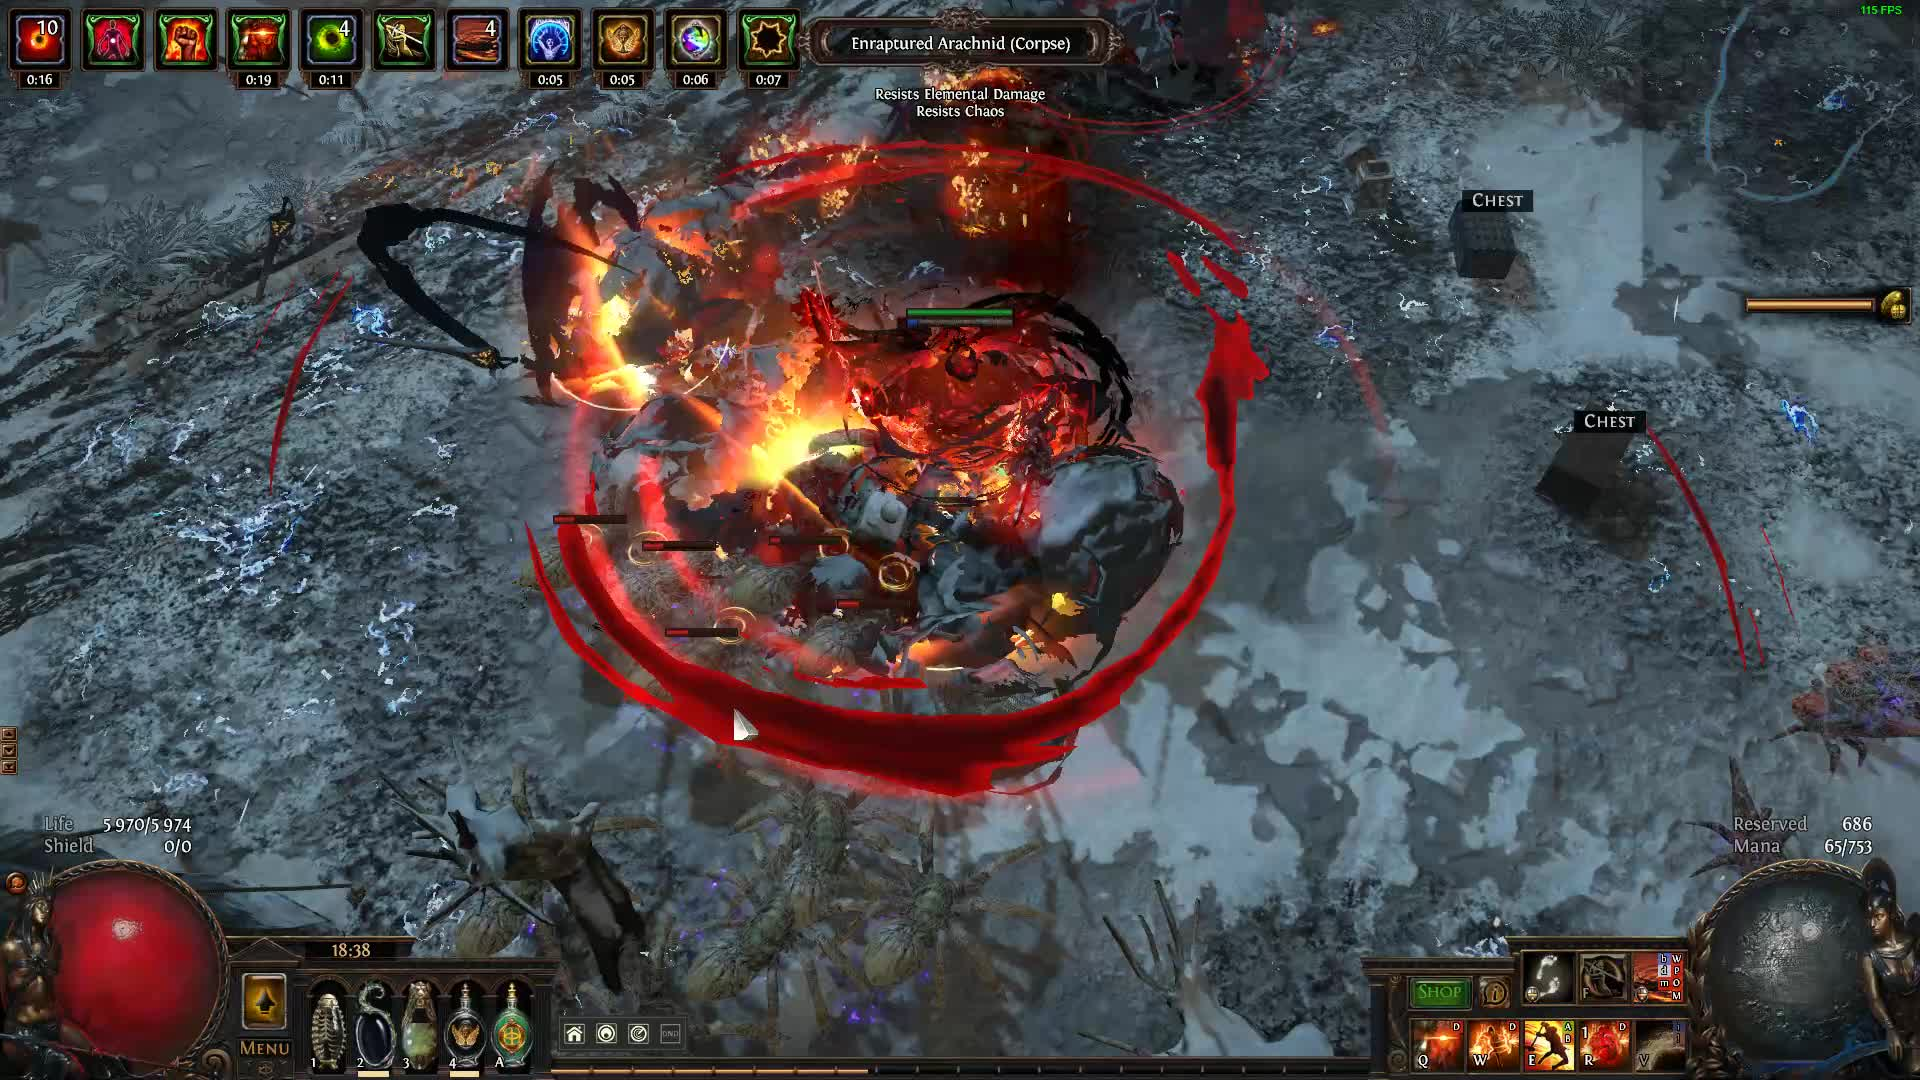 pathofexile, Double Swing Pog? GIFs